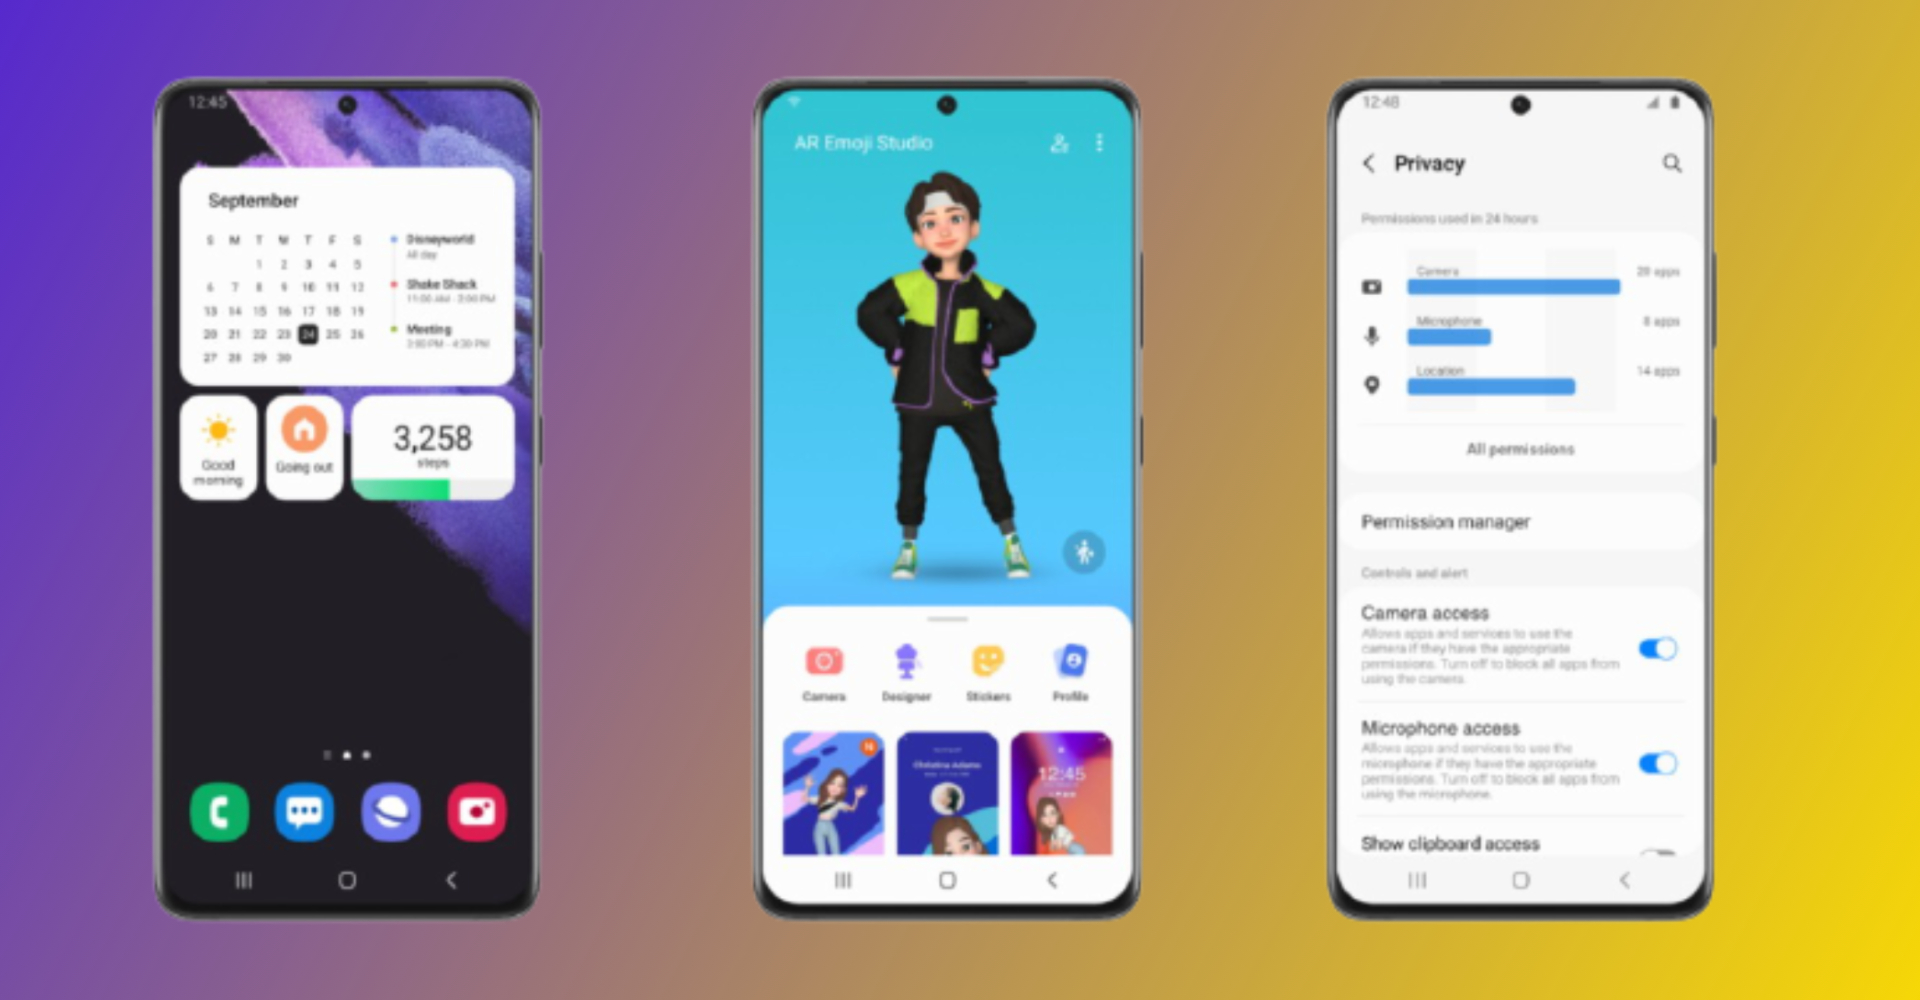 Samsung One UI 4.0 Features